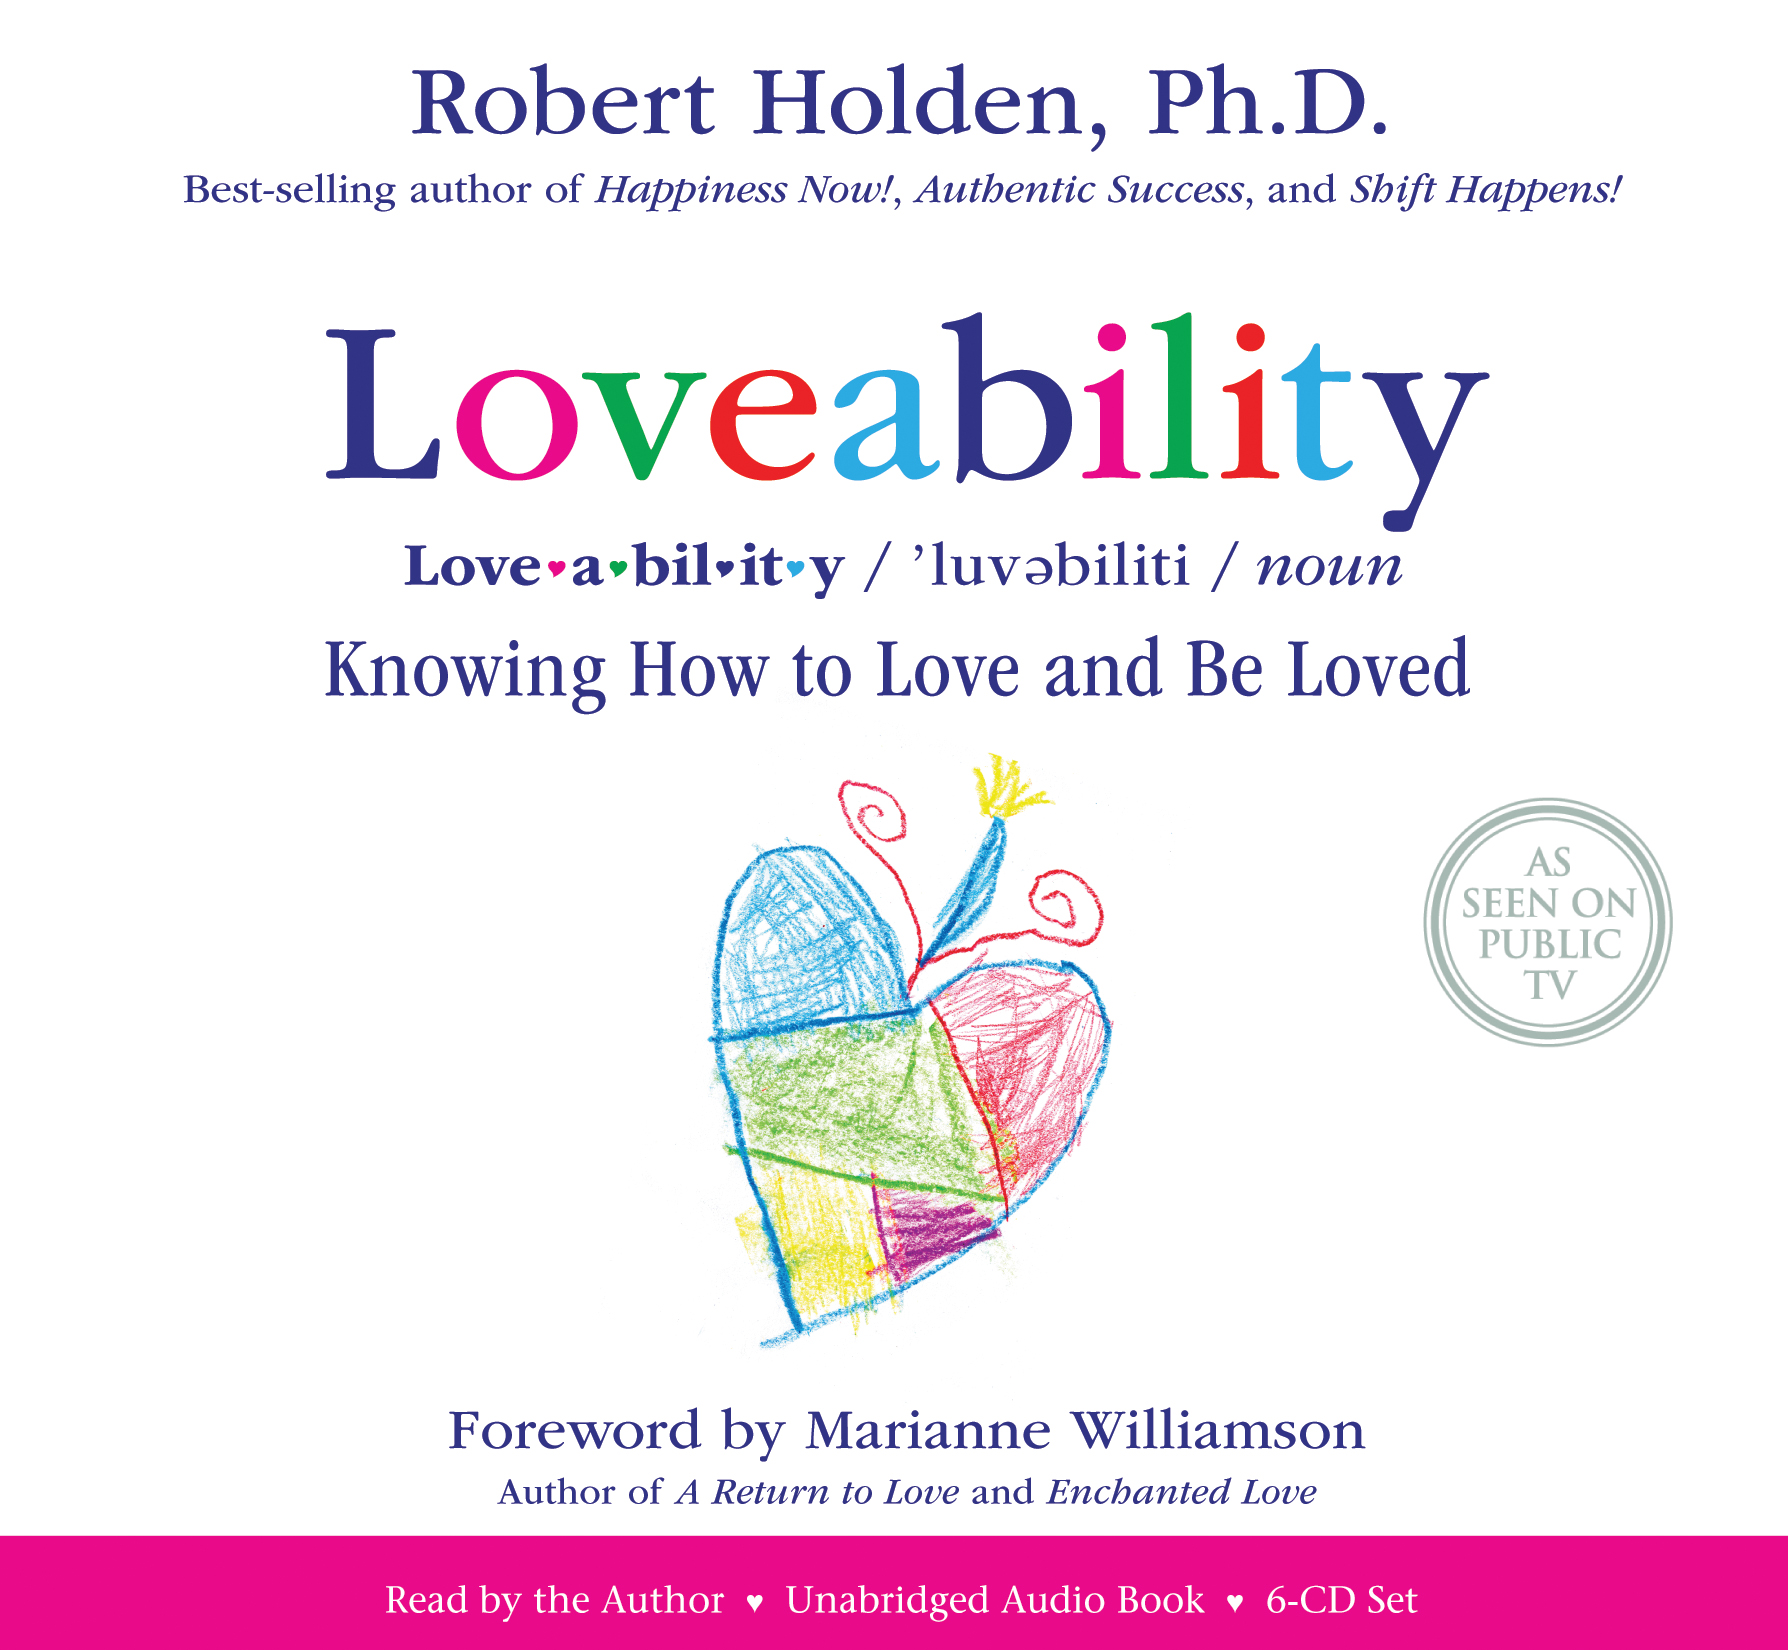 Loveability-CD-RGB.jpg